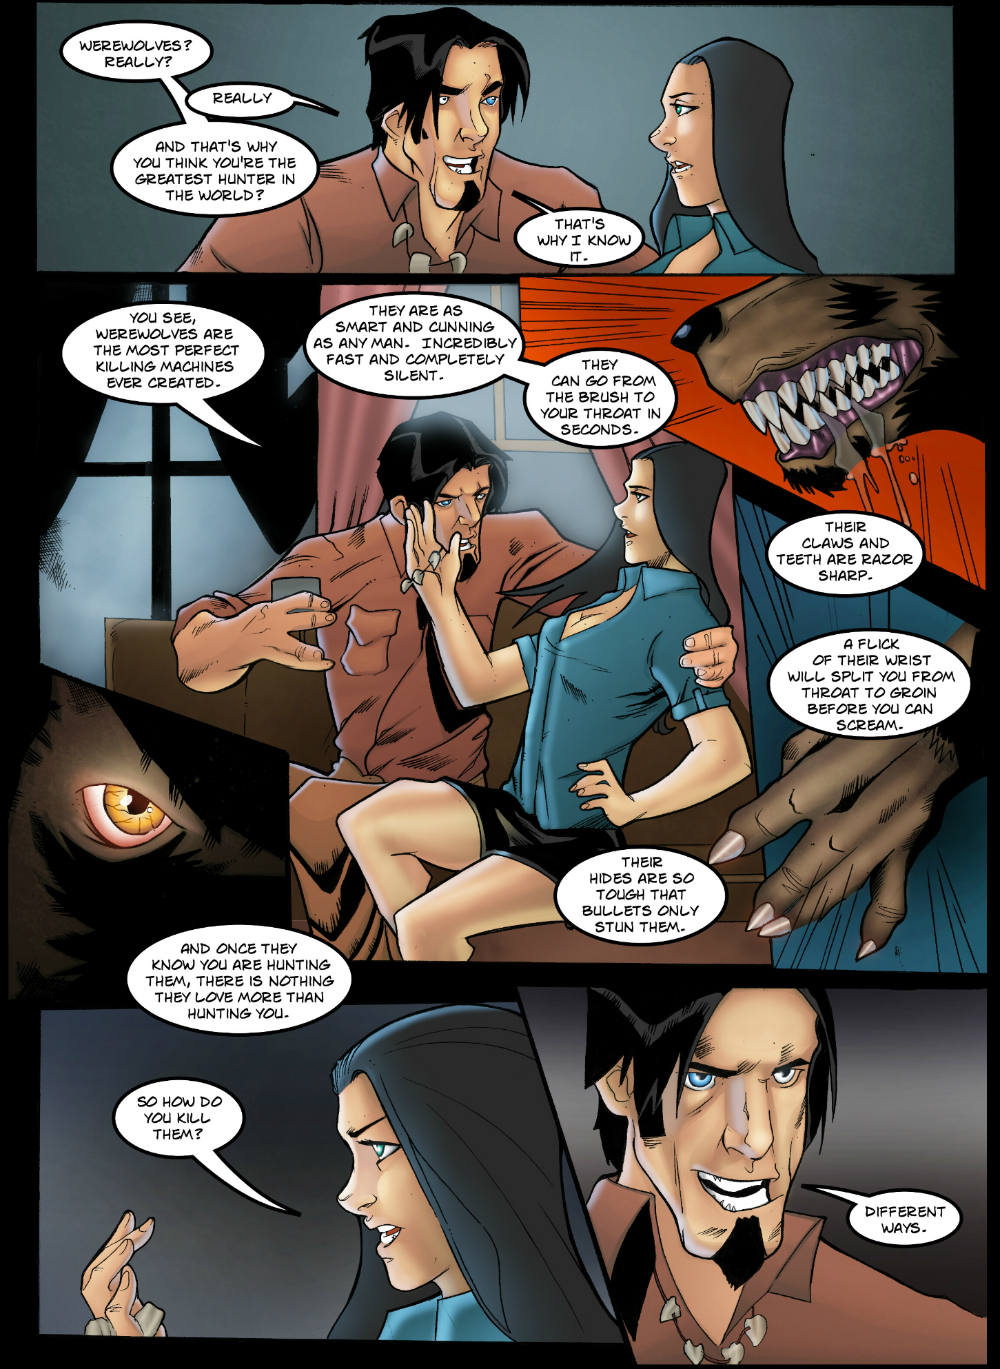 TROPHIES page 2 - story 16